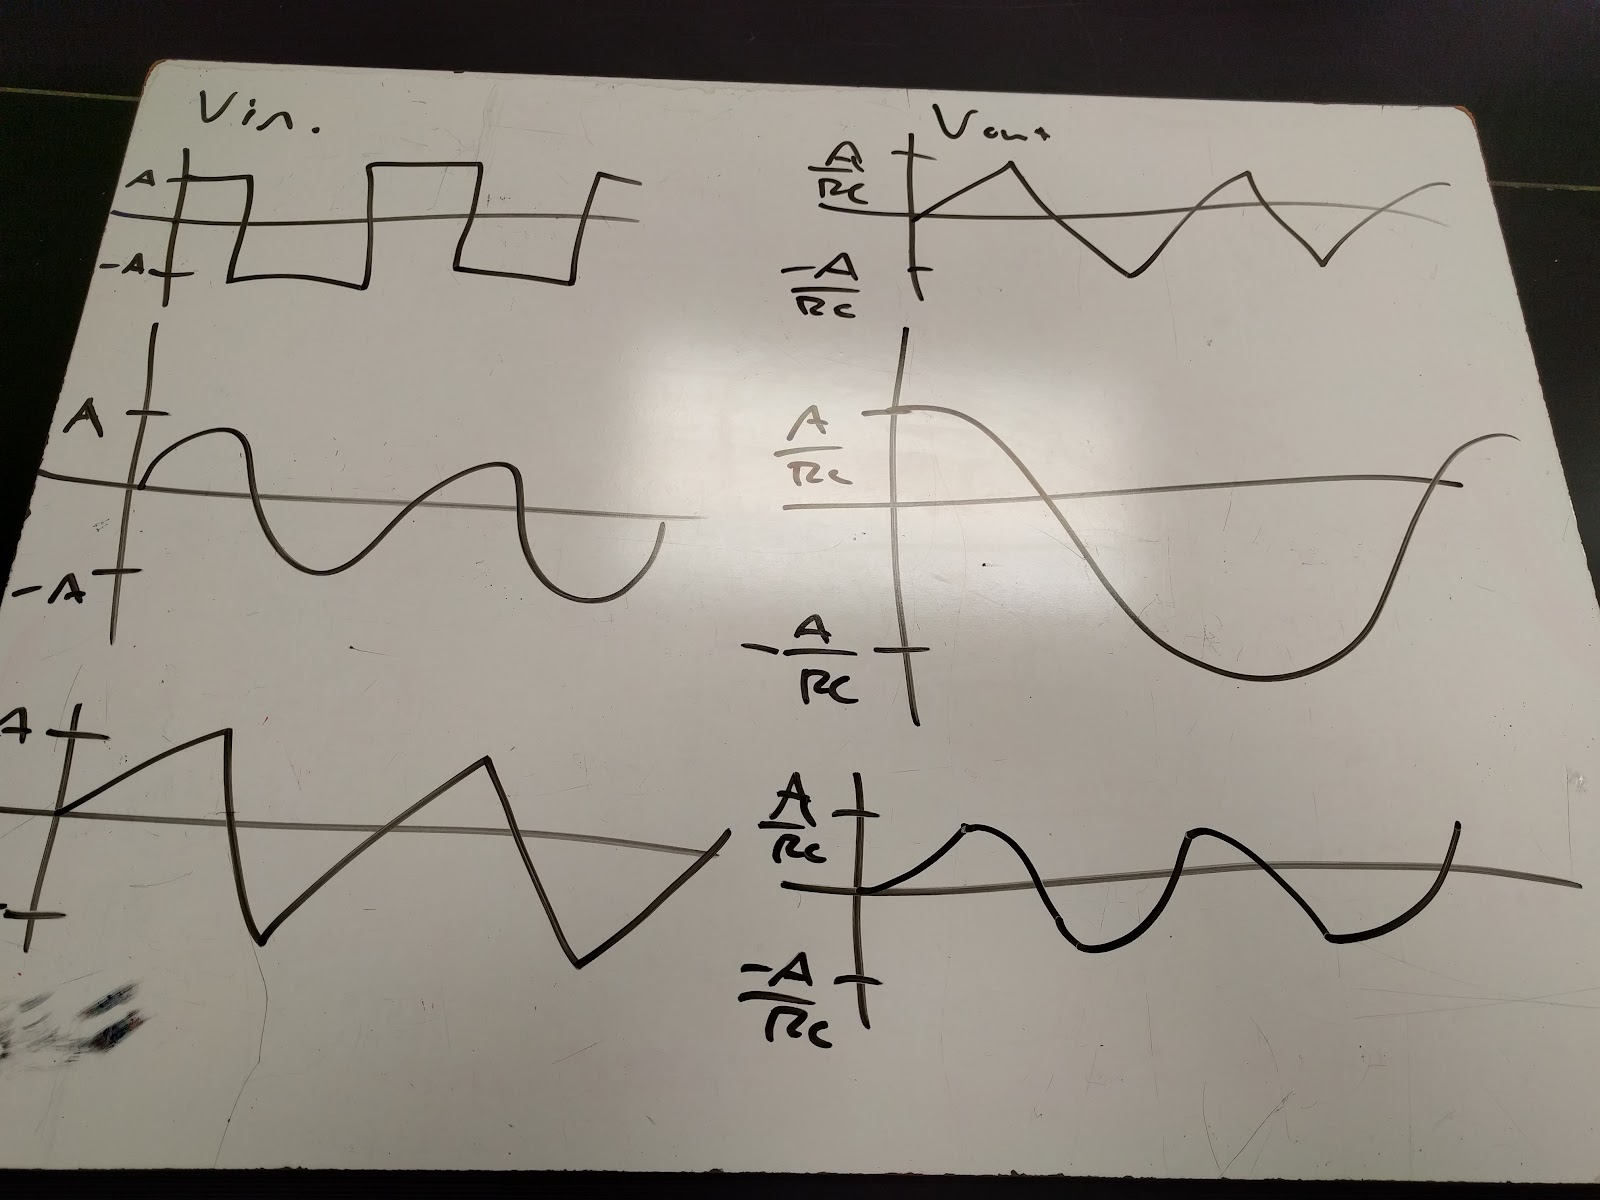 Rc Circuit Capacitor Voltage Everything About Wiring Diagram Fileseries Voltagesvg Wikimedia Commons Engineering 44 Hynassman 4 26 16 Day 19 First Order Op Across Graph Source